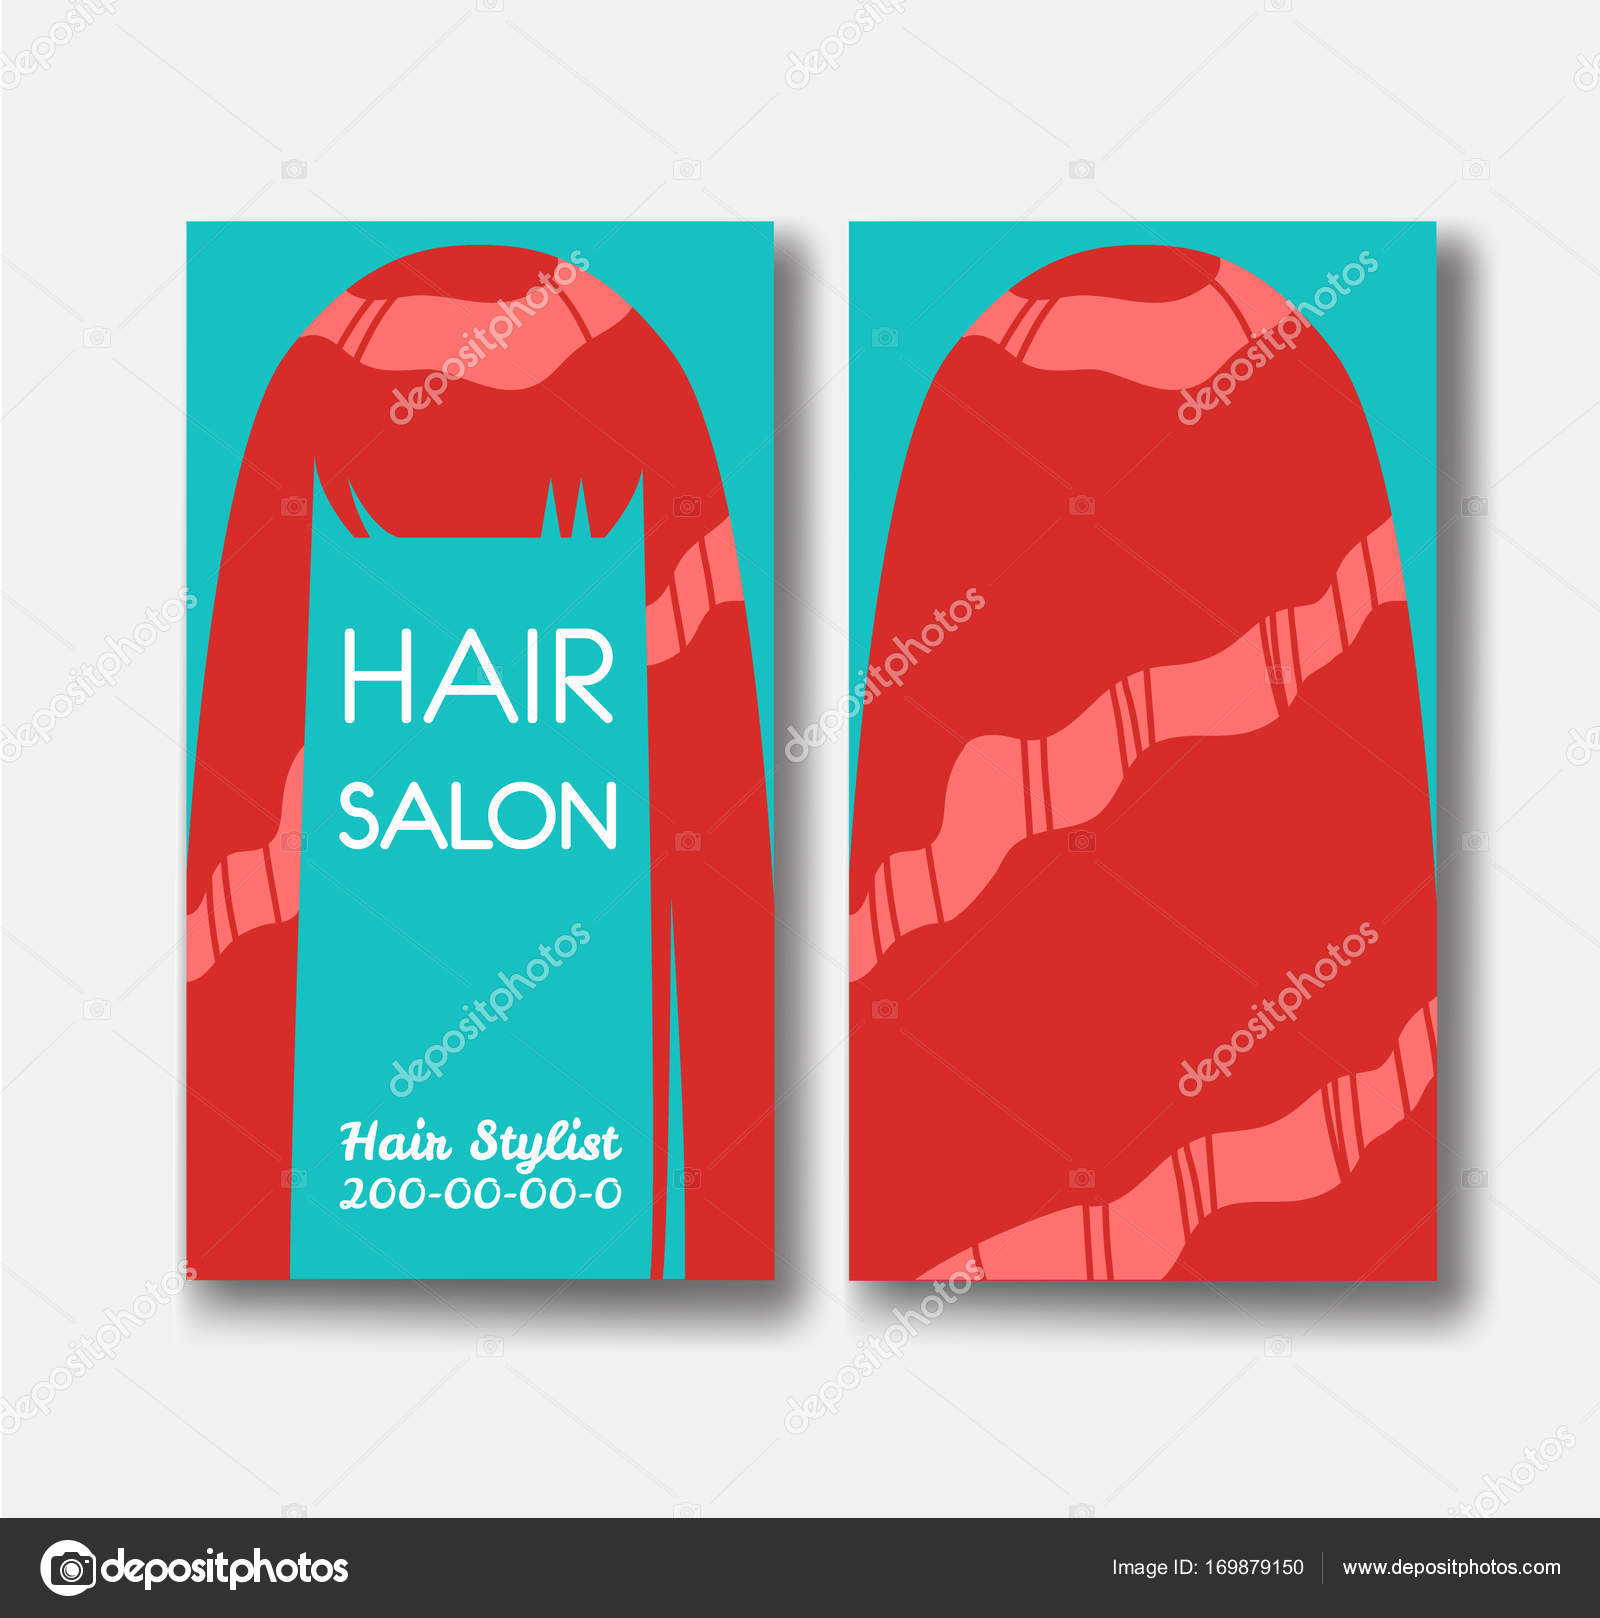 Hair salon business card templates with red hair on green backgr hair salon business card templates with red hair on green backgr stock vector wajeb Choice Image